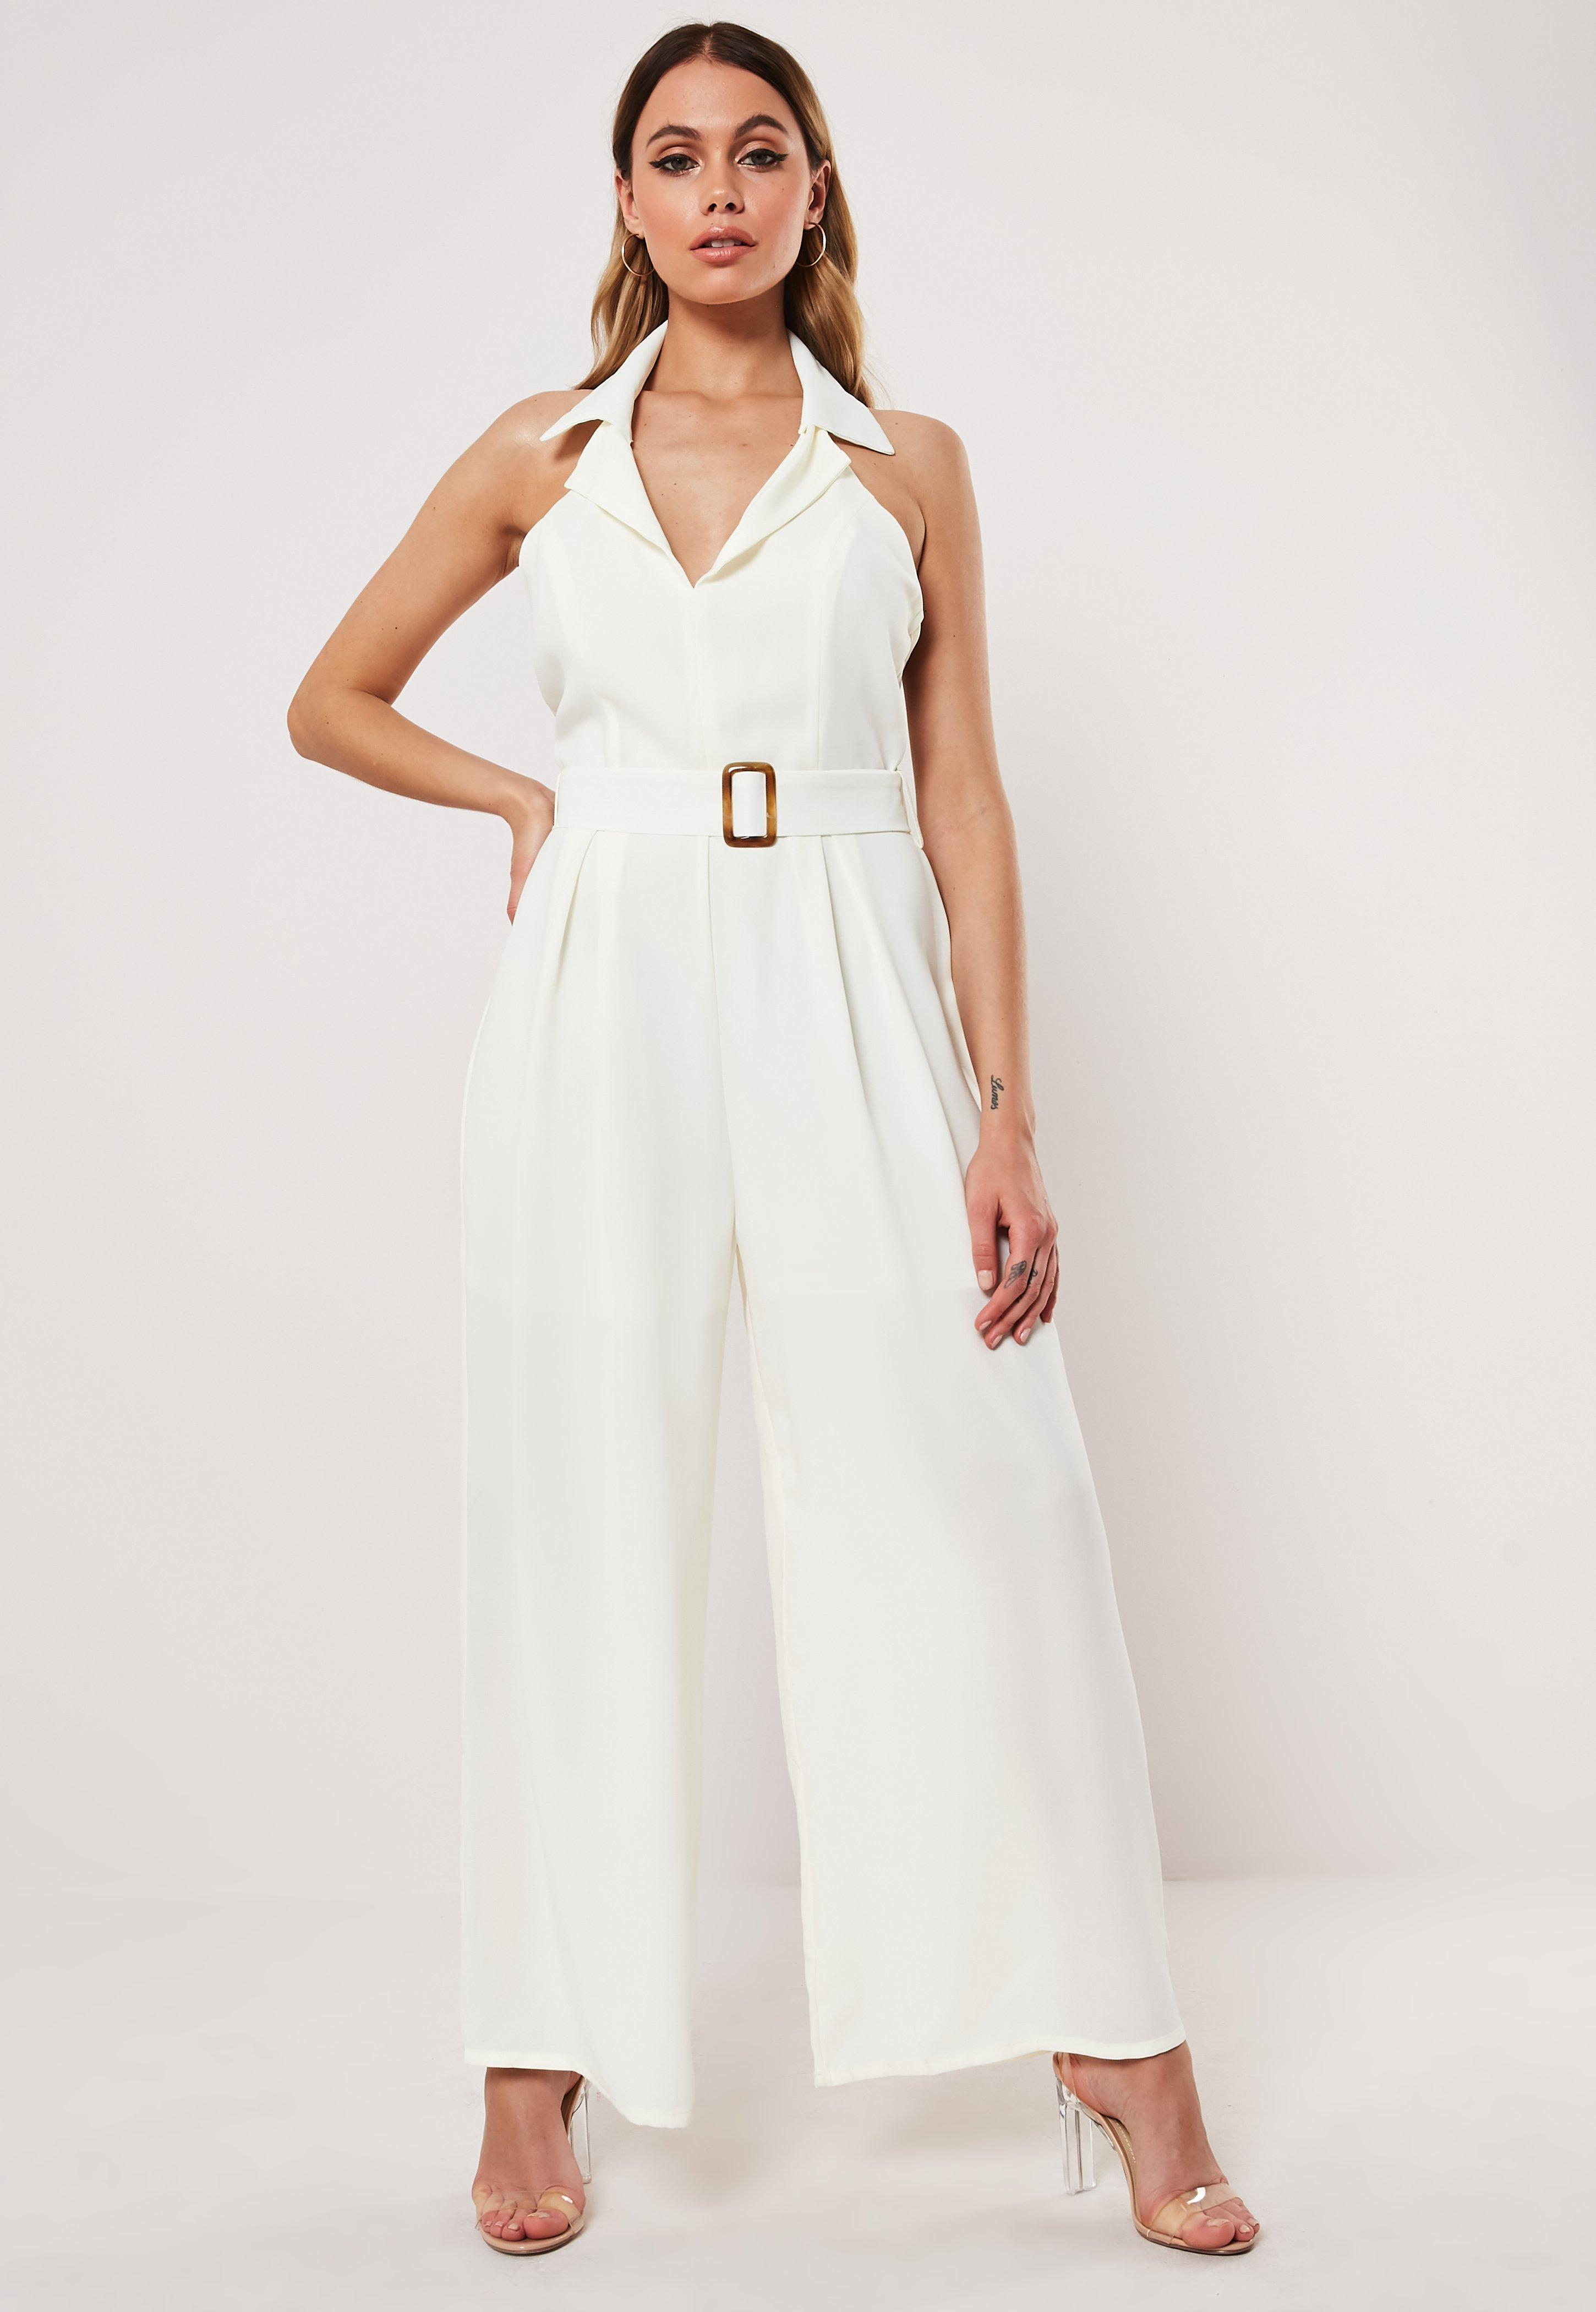 ab53f59e55f21 Plunge Jumpsuits | V Neck & Low Cut Jumpsuits - Missguided